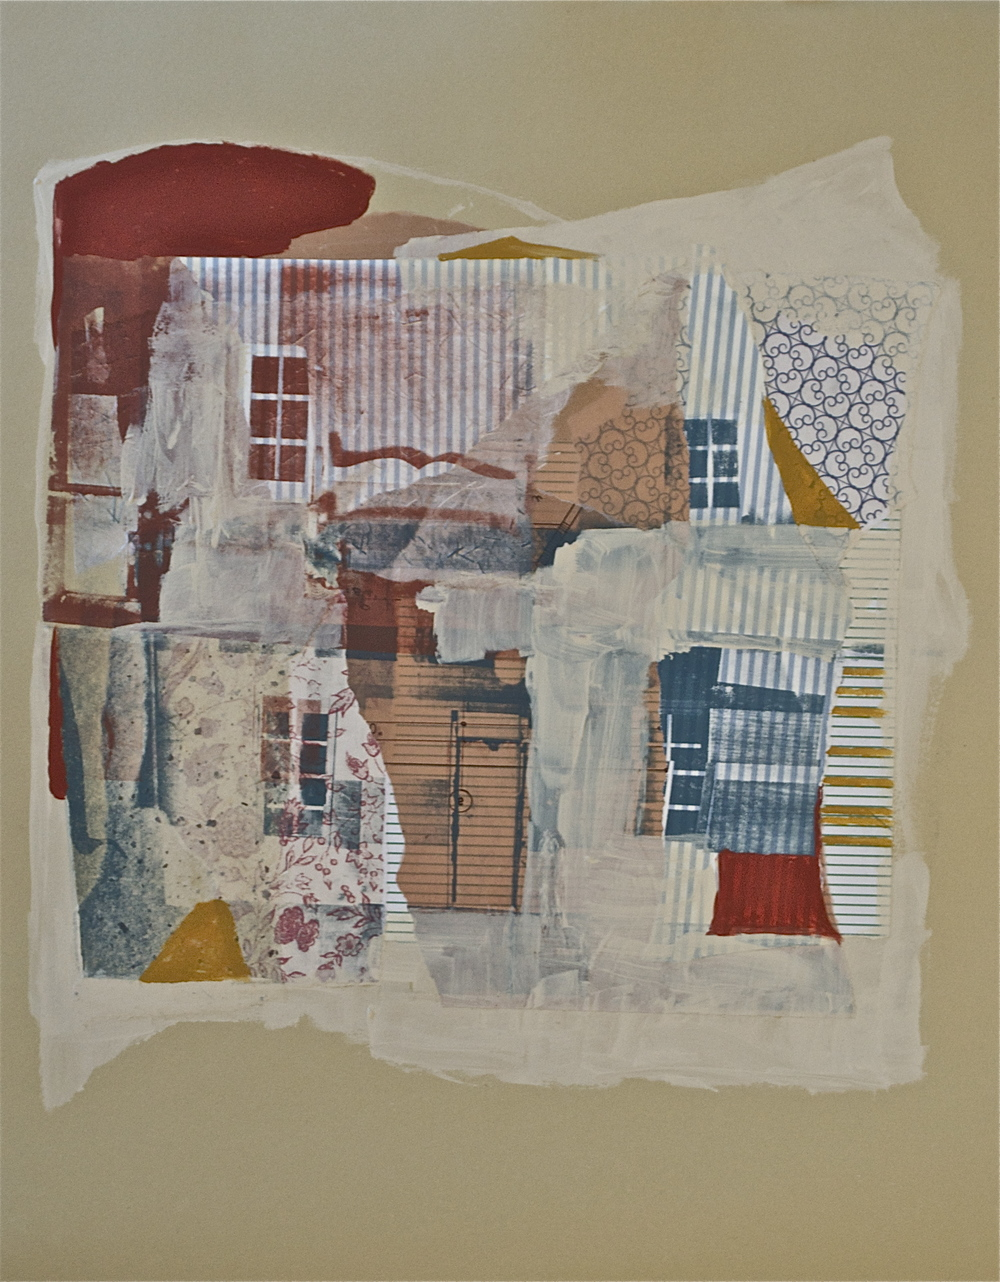 "Pieces Of A Broken House,  2013, Serigraphy, Chine Collé, Acrylic on Paper, 20"" x 16"" inches"